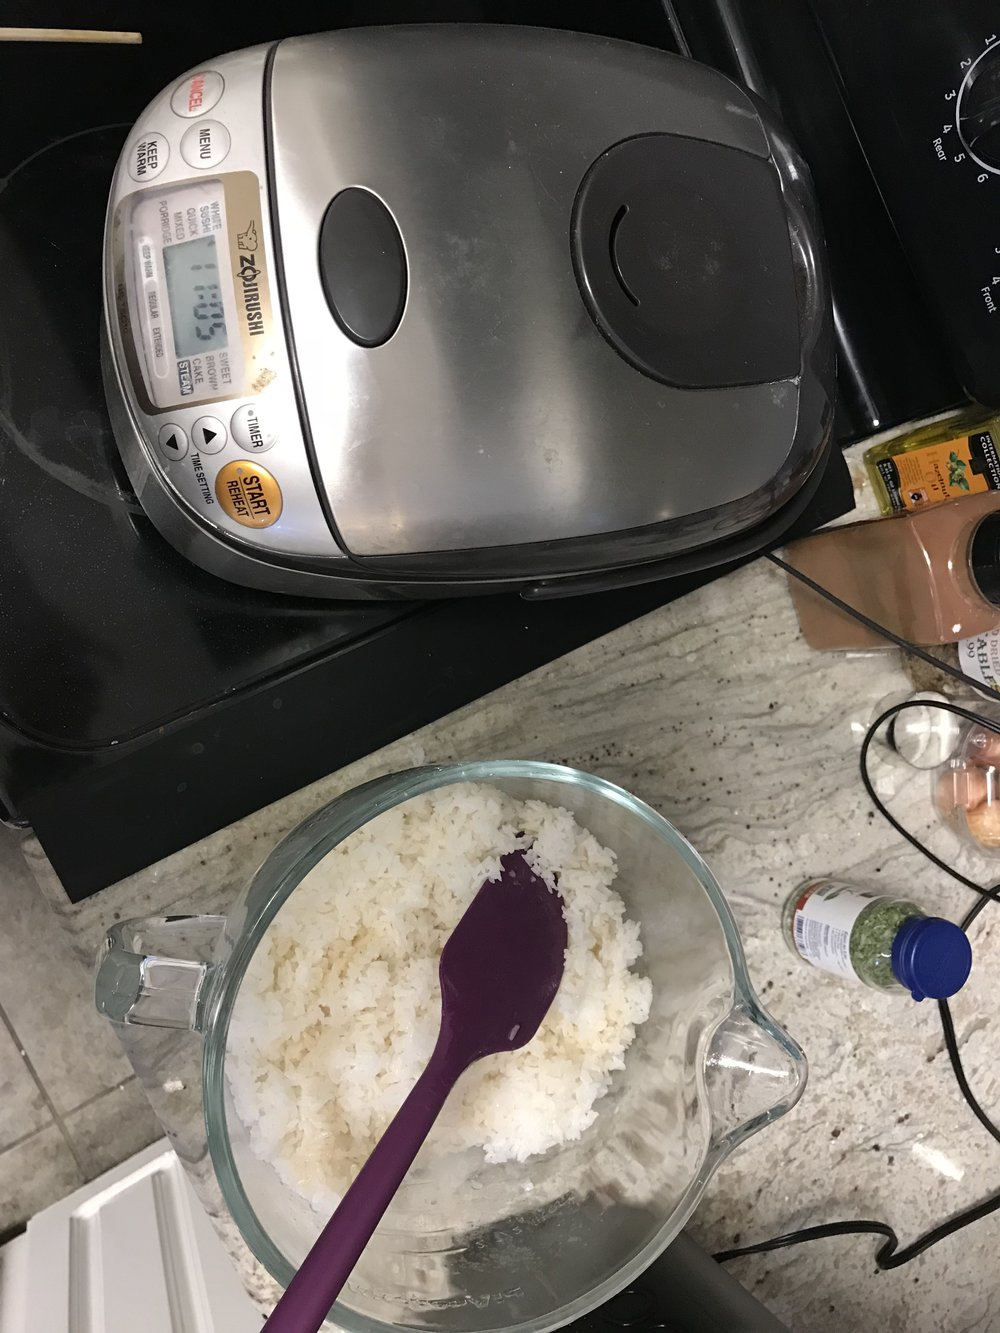 My rice cooker (which is my favorite appliance ever) and my rice, cooling.